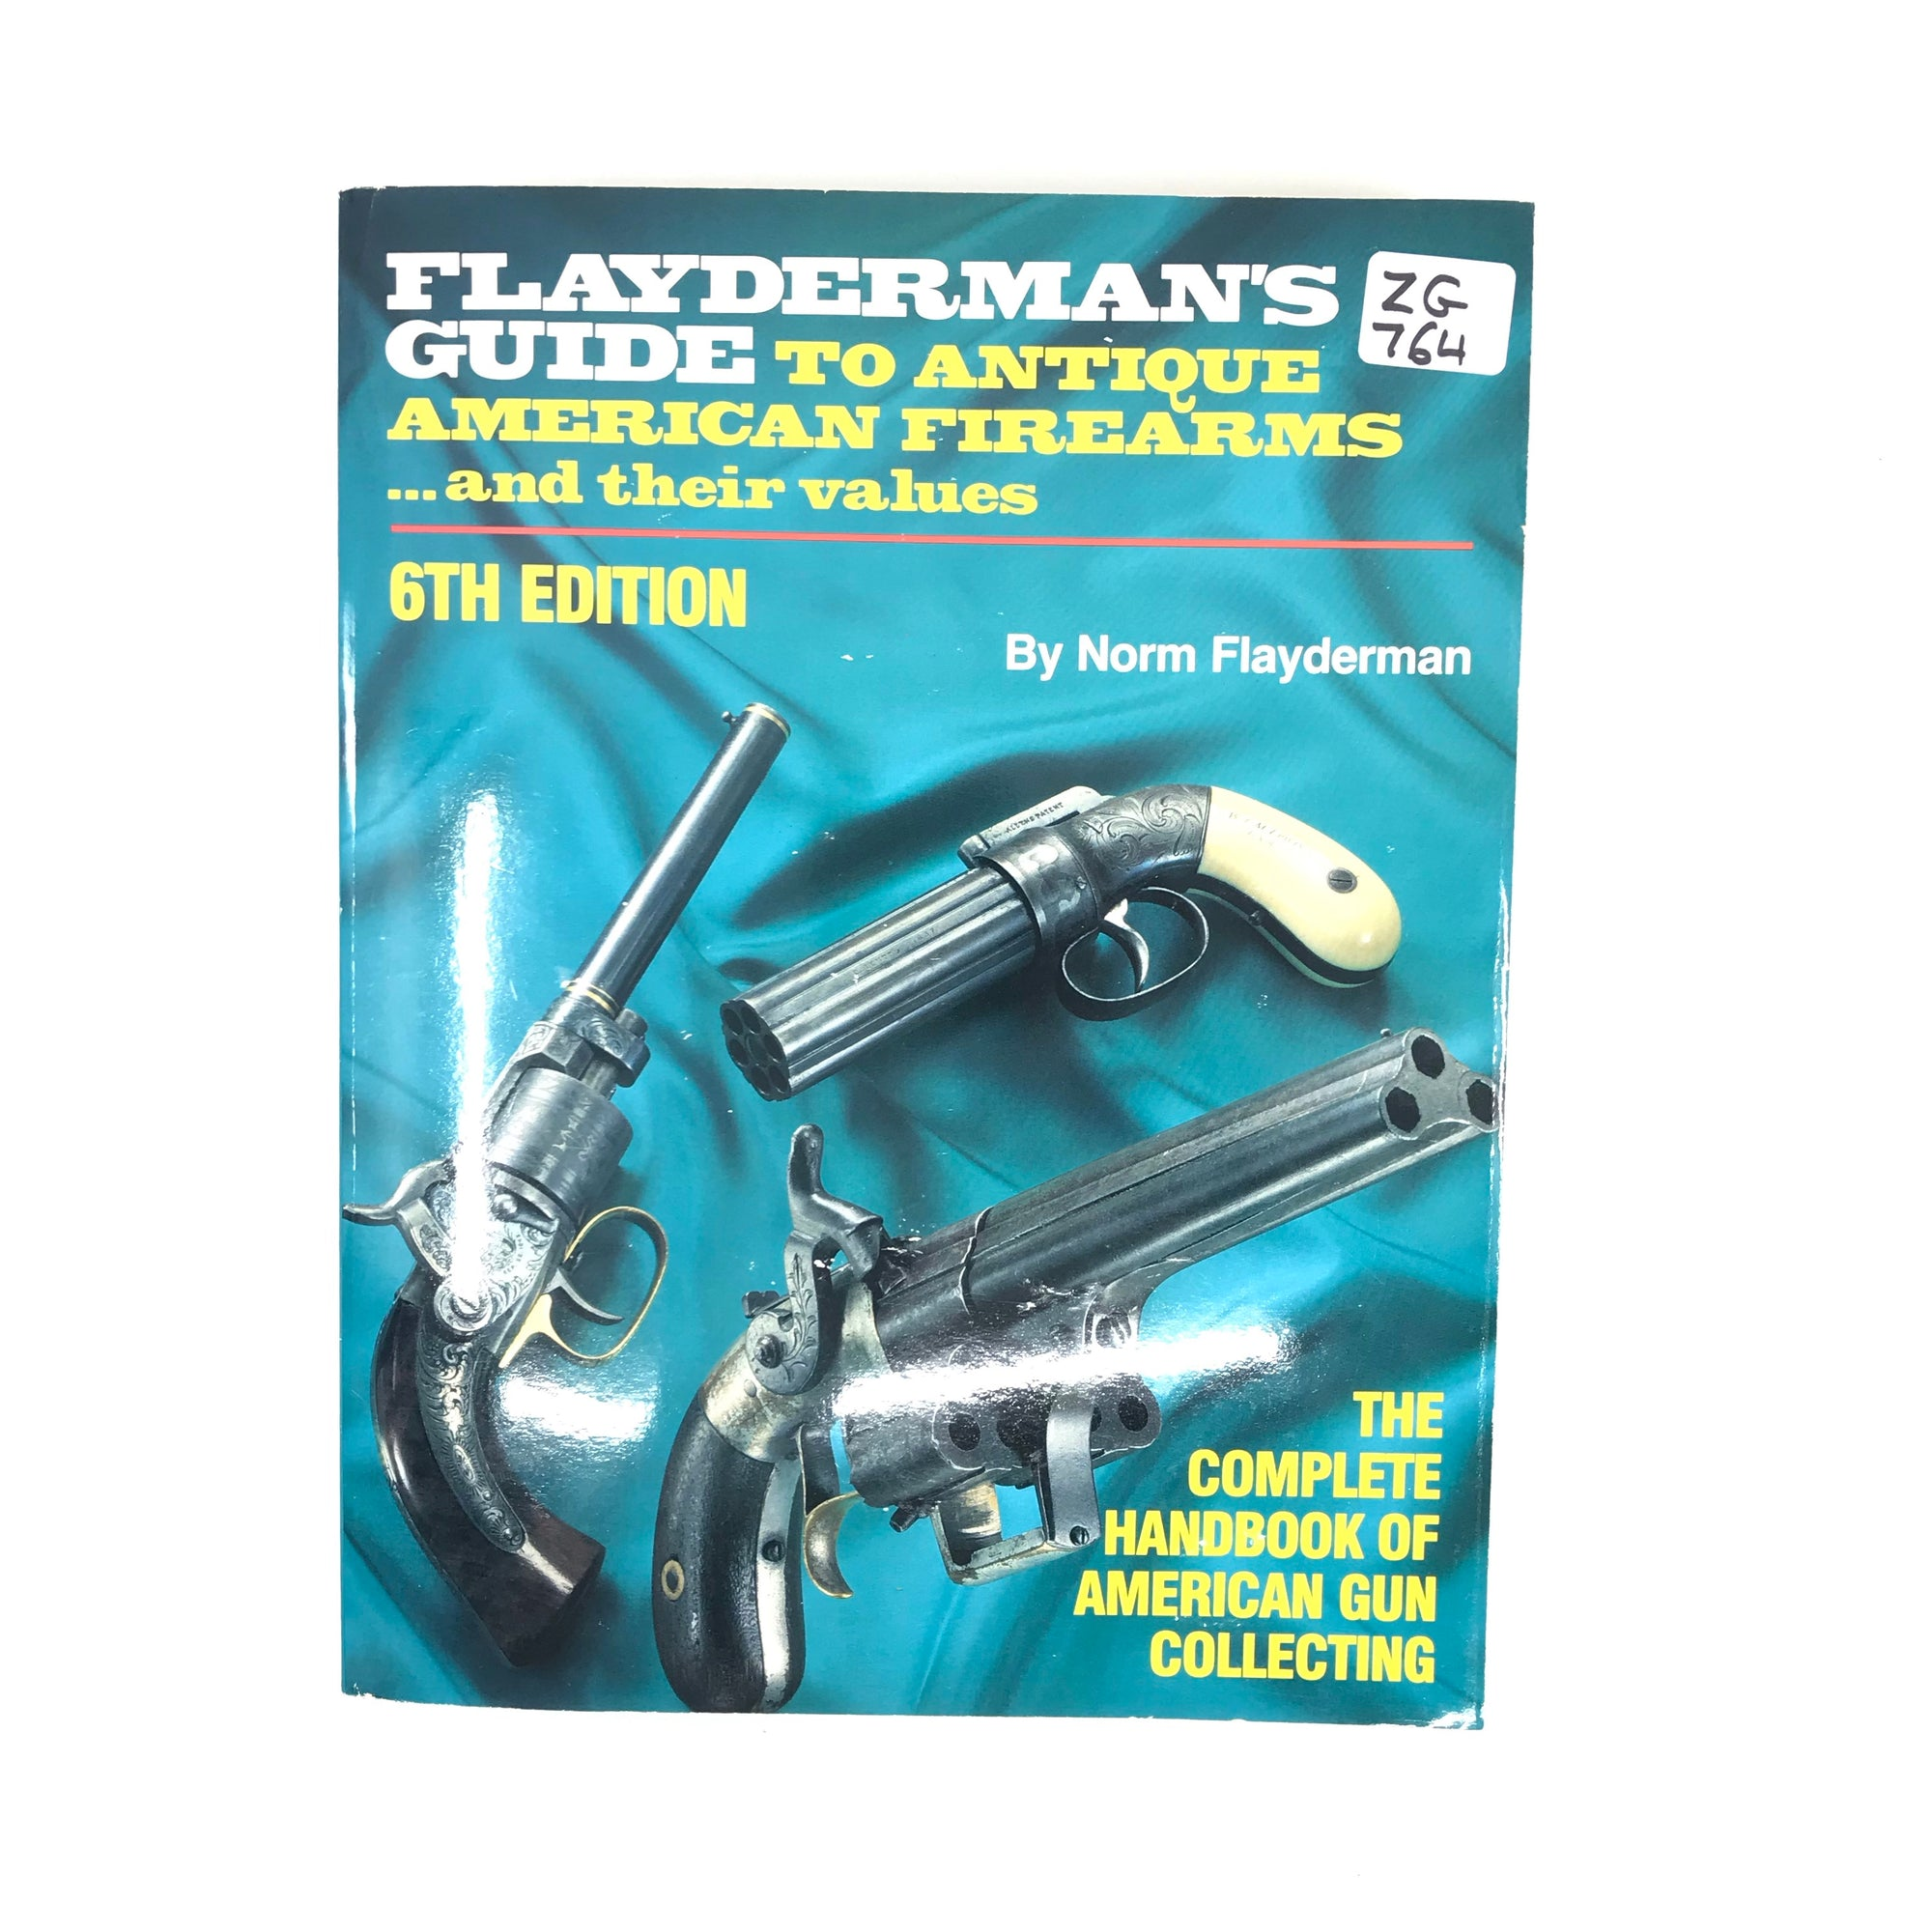 Flaydermans Guide to Antique American Firearms and Their Values 6th Edition SB 635pgs